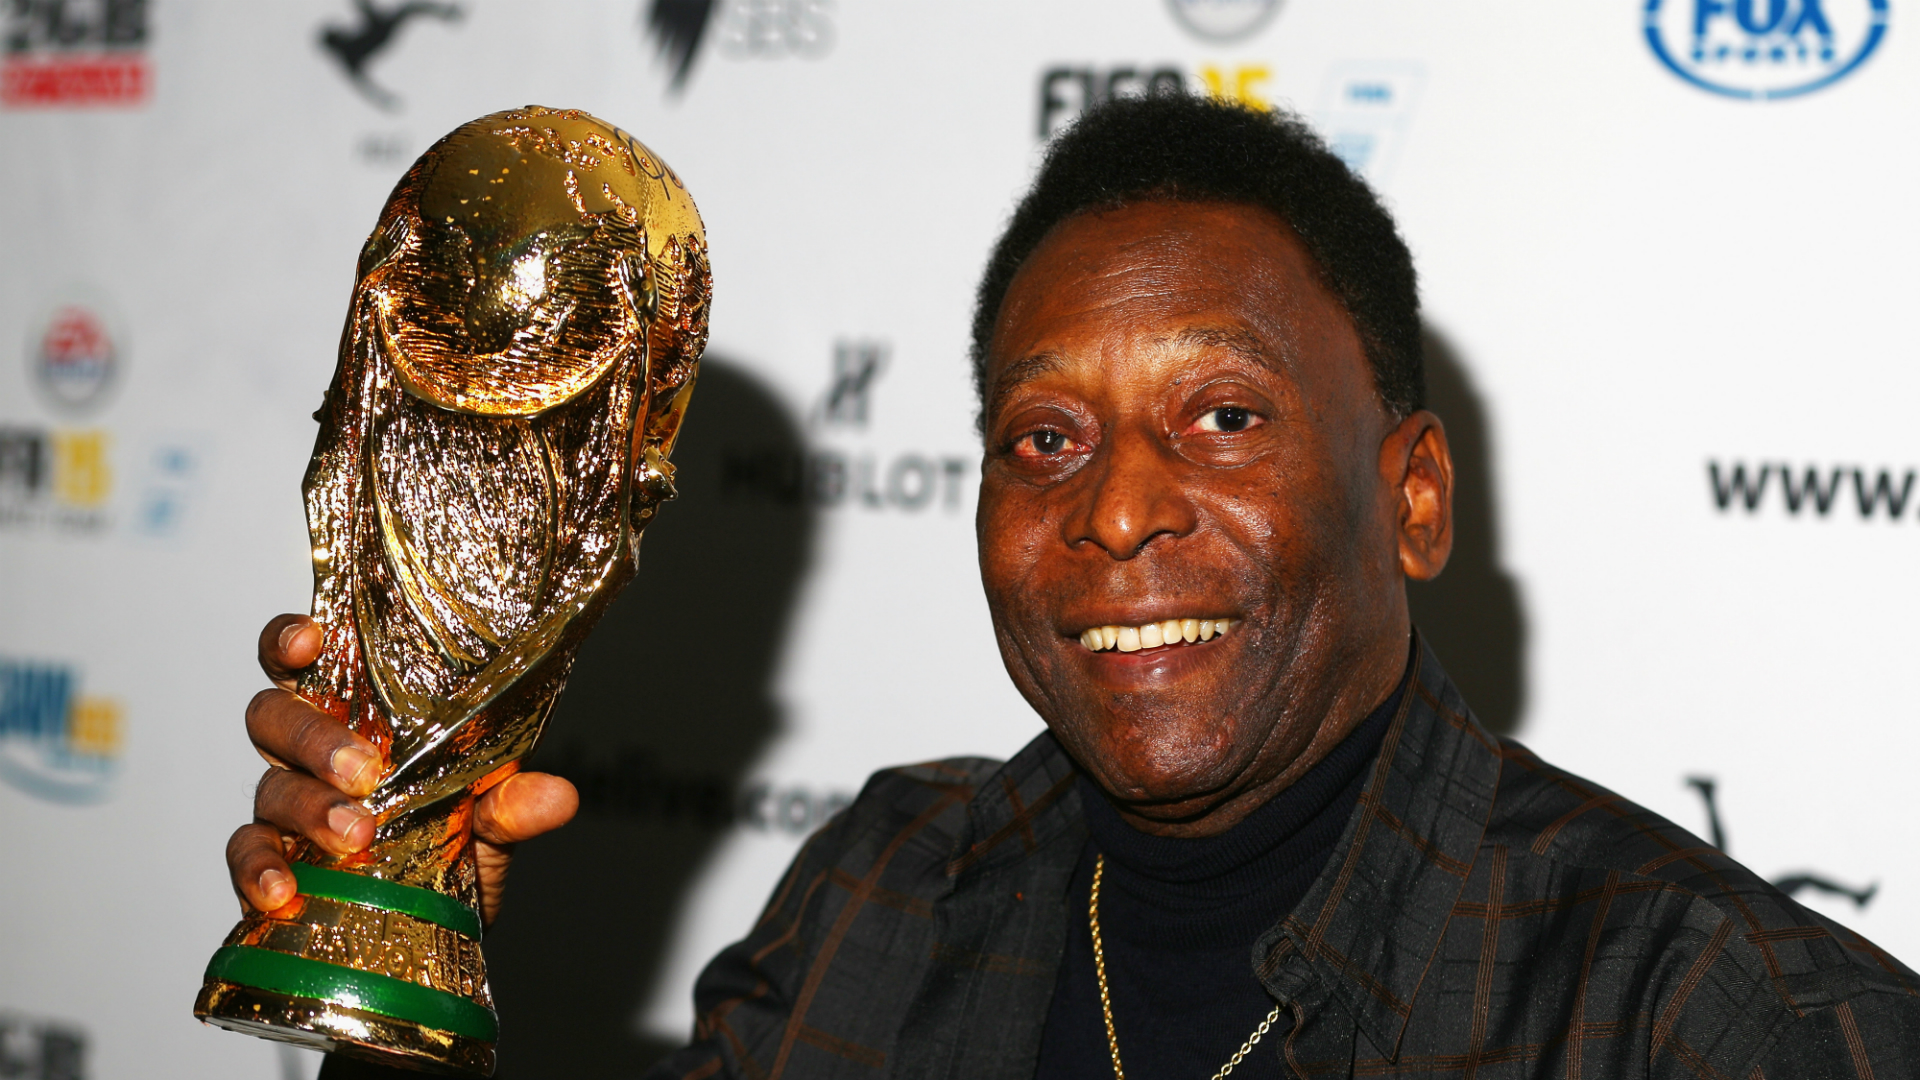 Pele back in Brazil after hospital stay in Paris